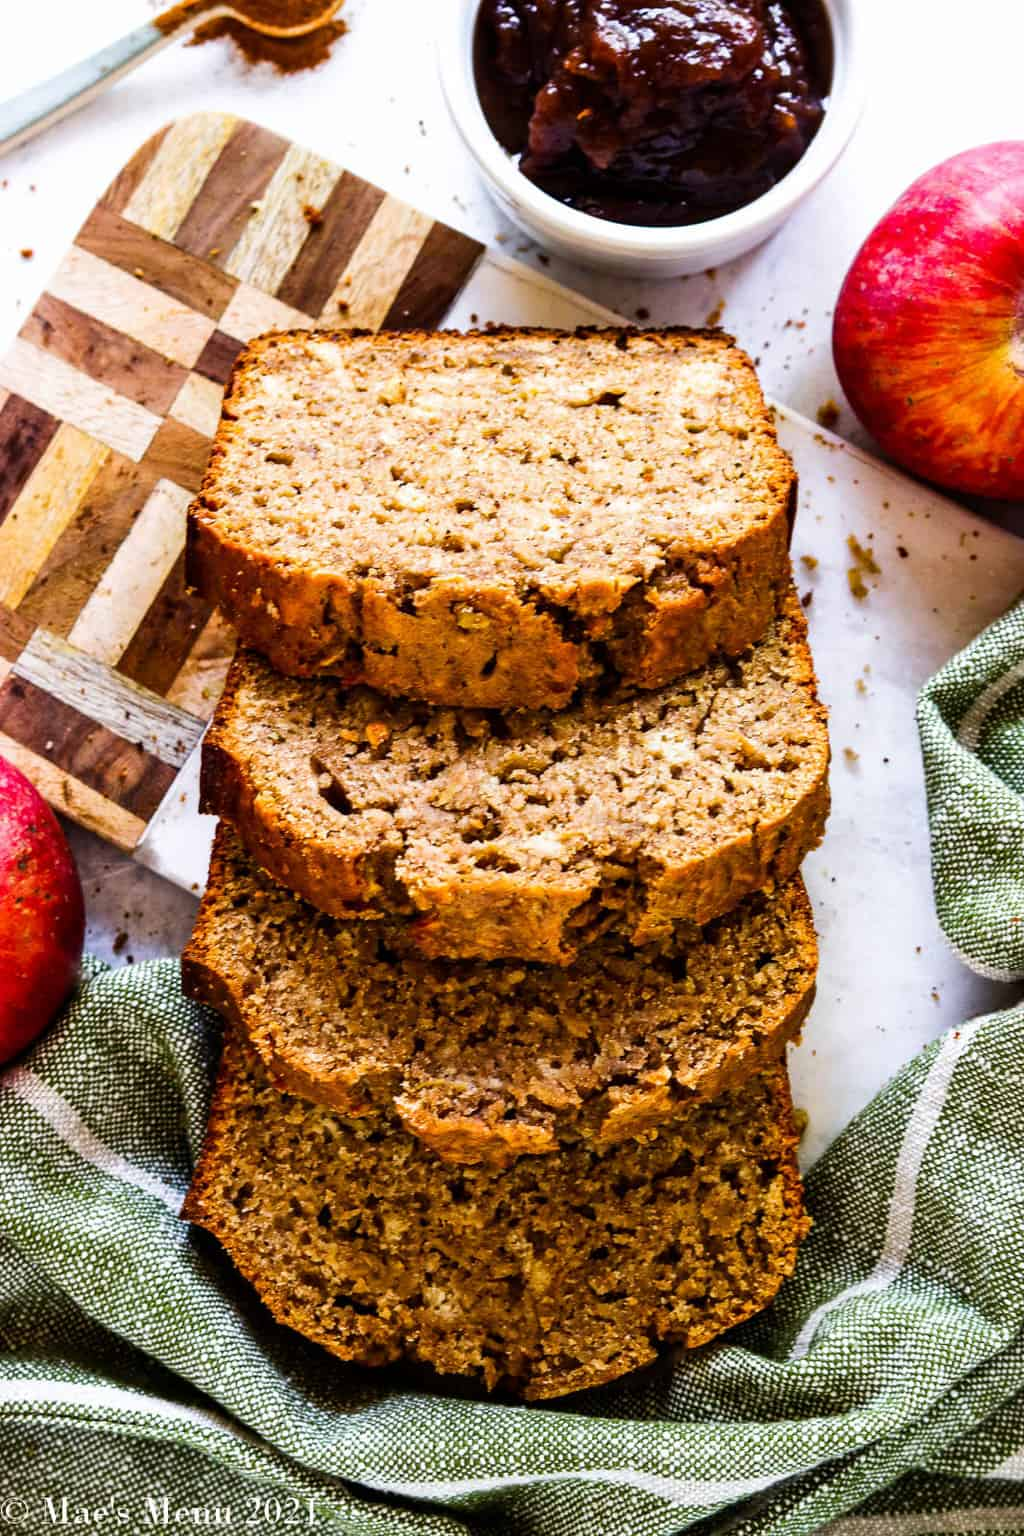 Slices of cinnamon apple bread resting on each other and off of a cutting board